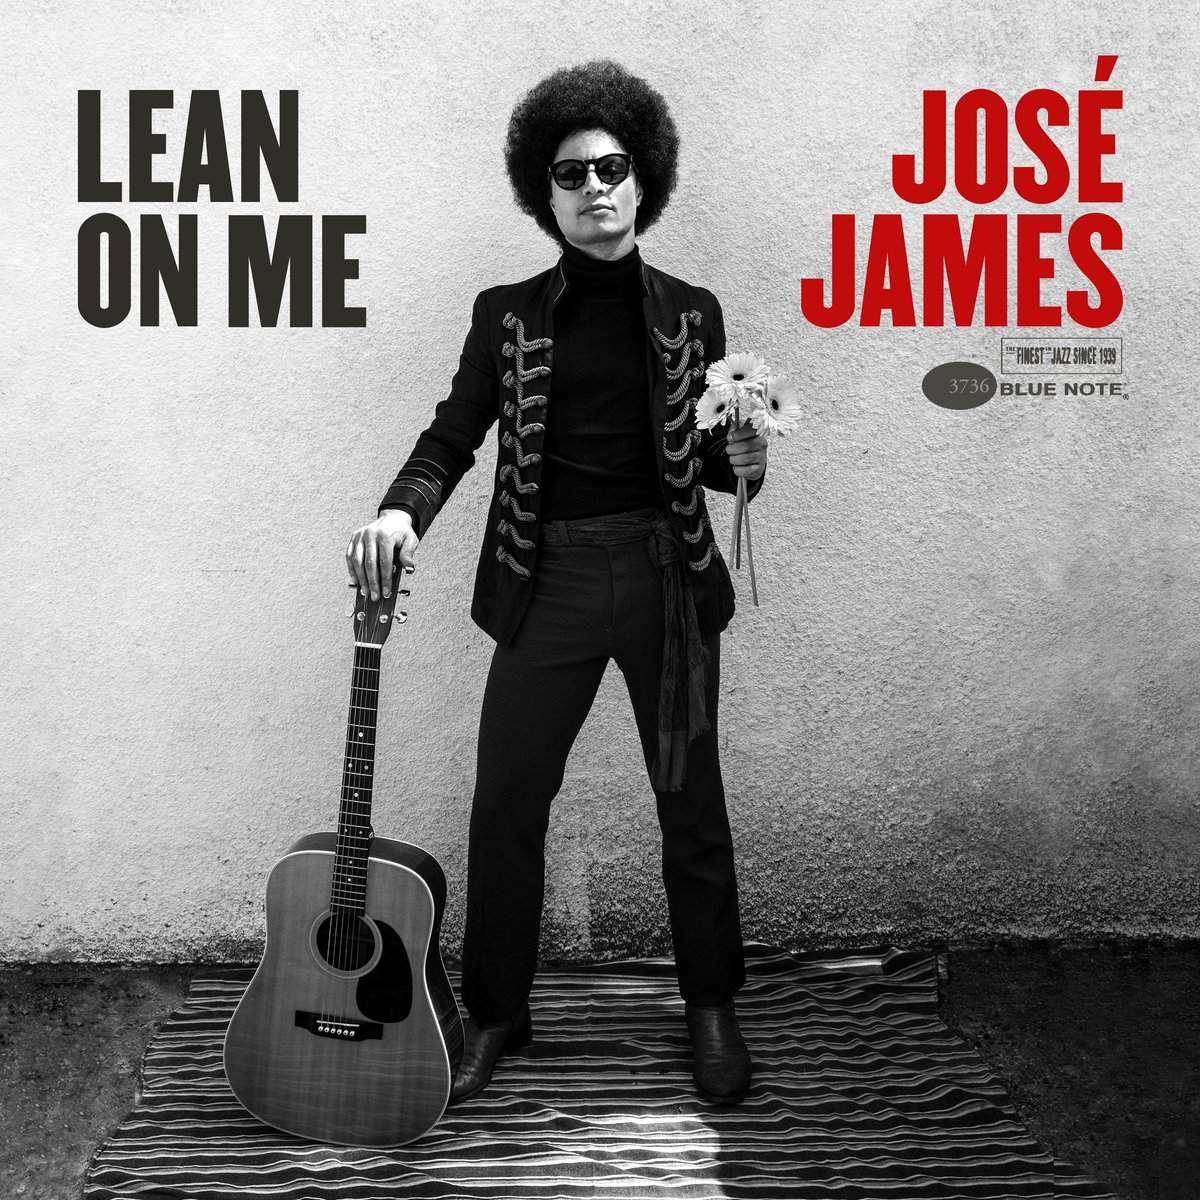 James Jose – Lean On Me